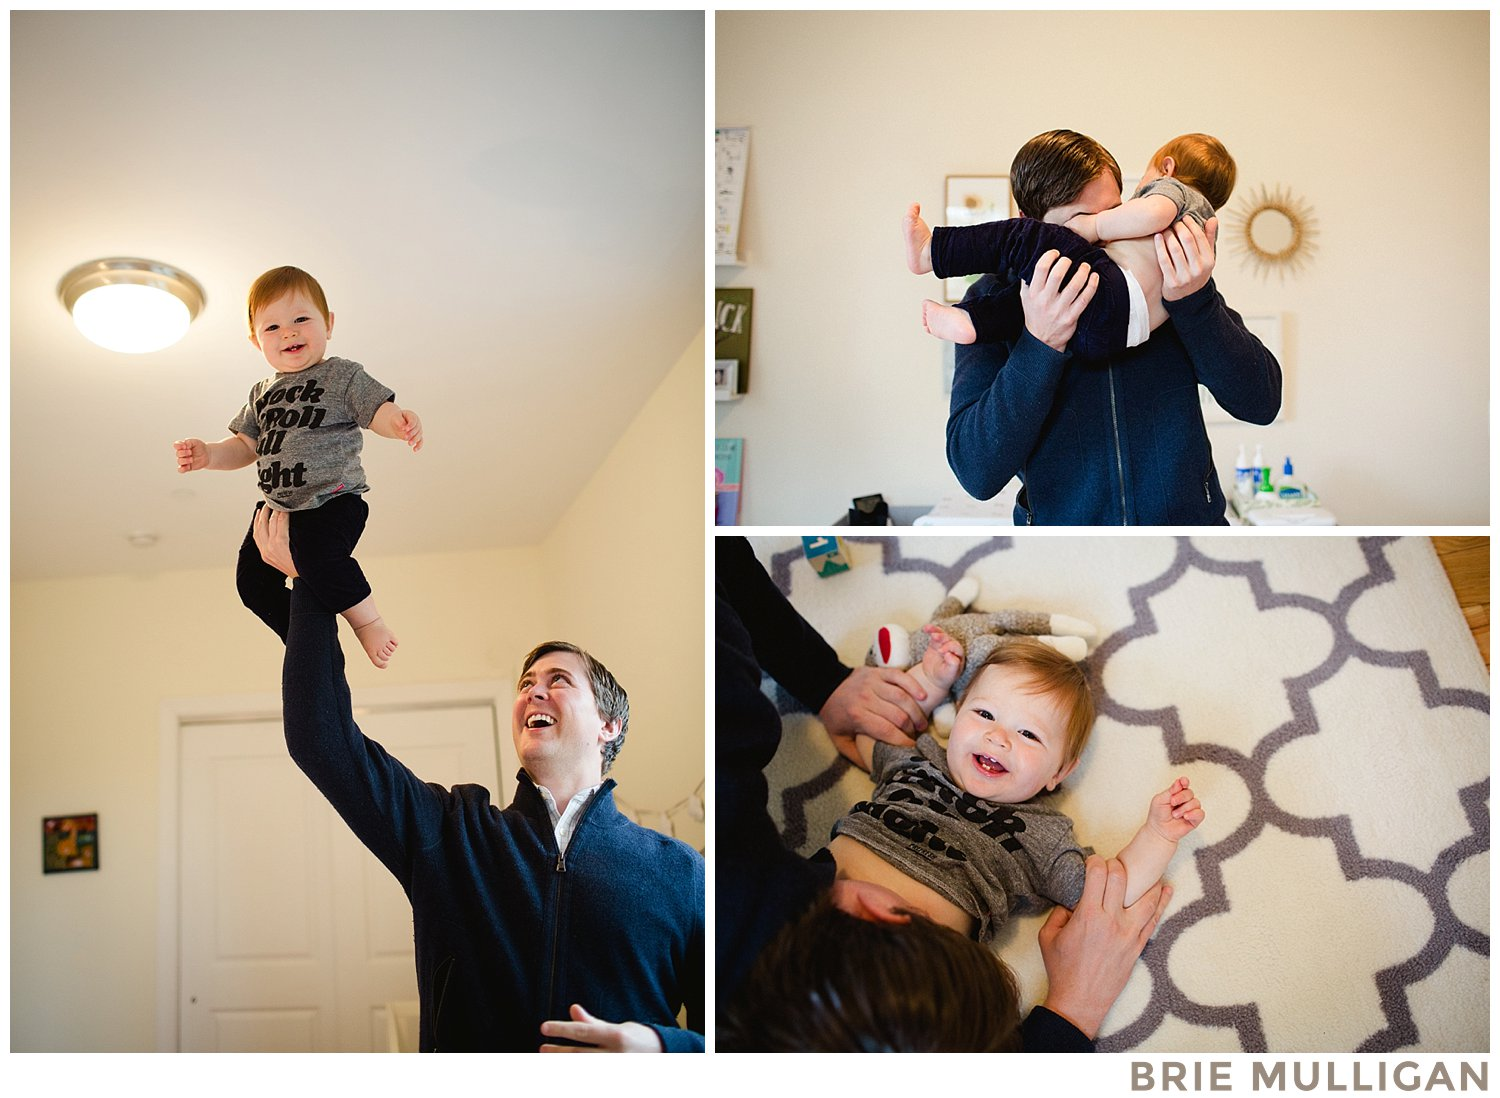 Brie-Mulligan-Family-and-Newborn-Photographer-NYC-and-Northern-NJ_0121.jpg